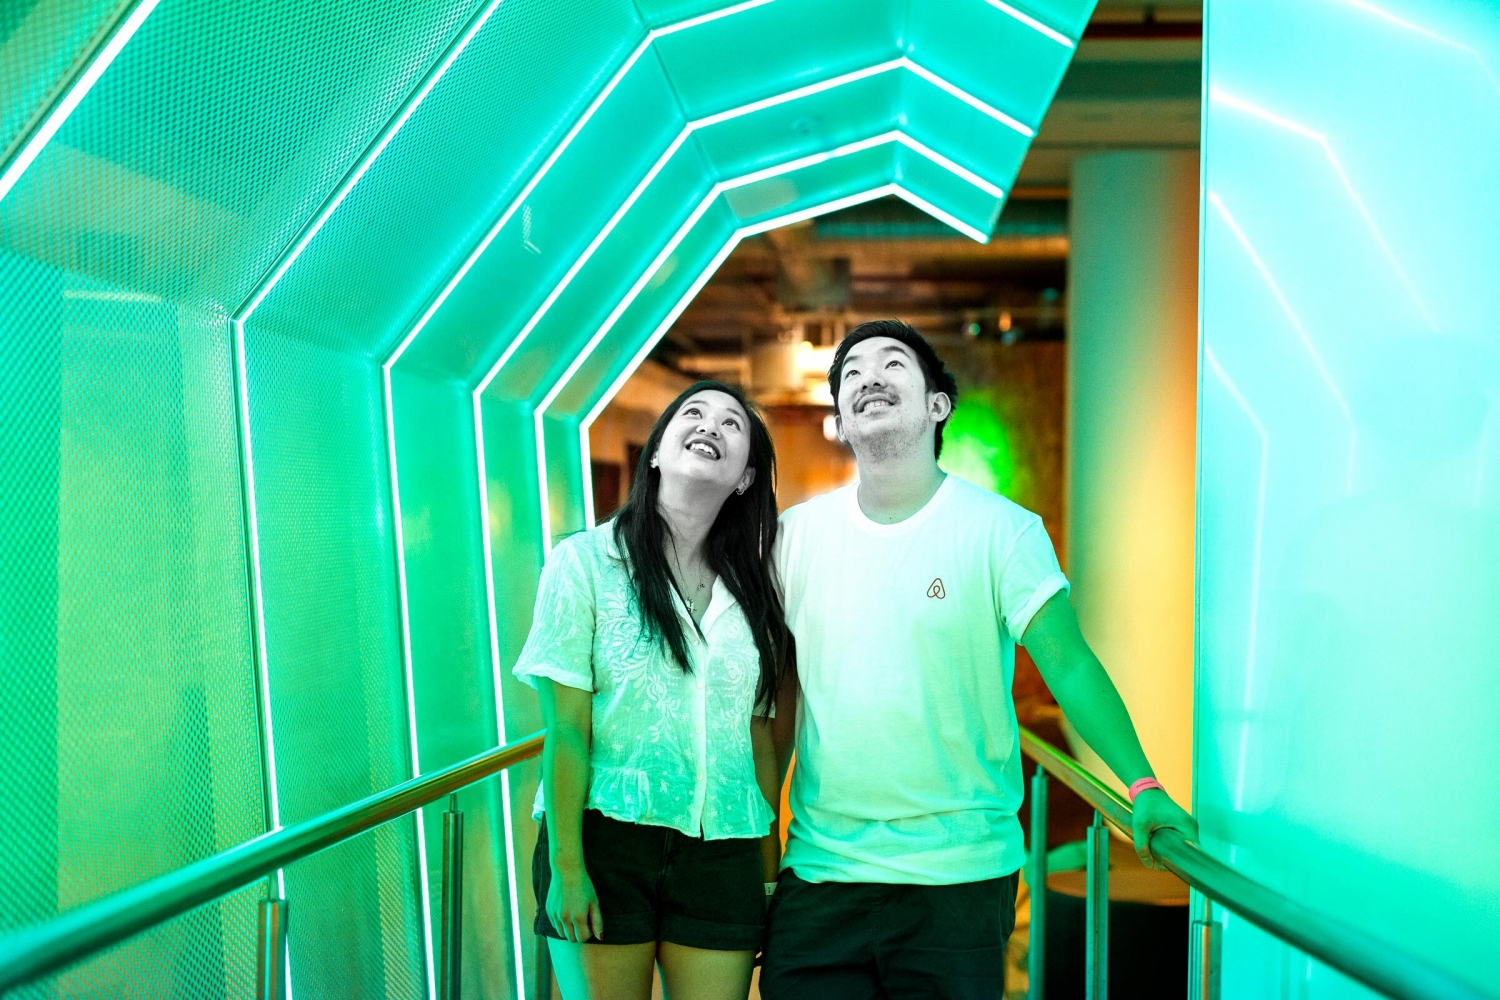 A man and woman in a tunnel lit by green light